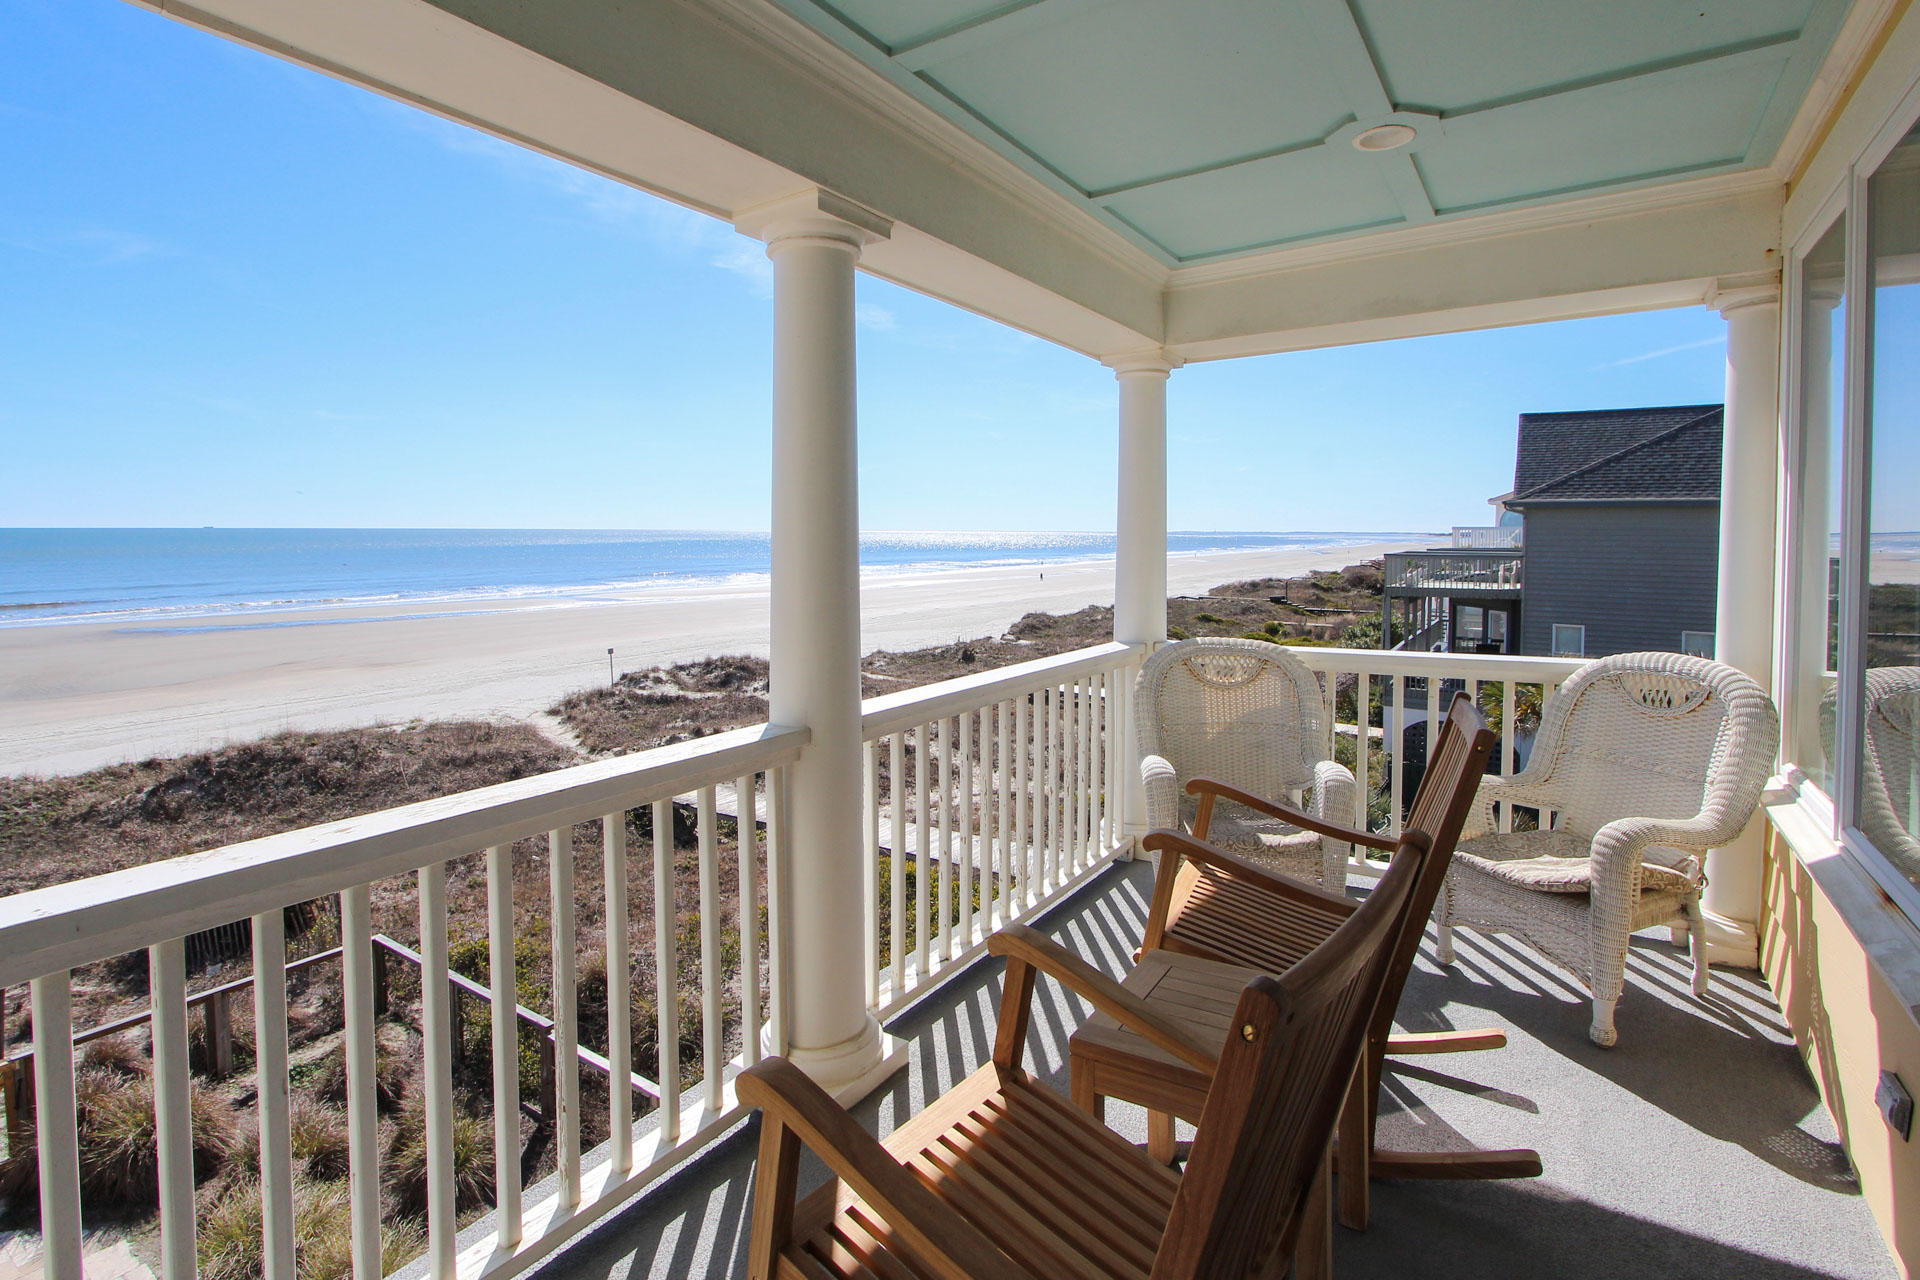 Isle of Palms Homes For Sale - 810 Ocean, Isle of Palms, SC - 24